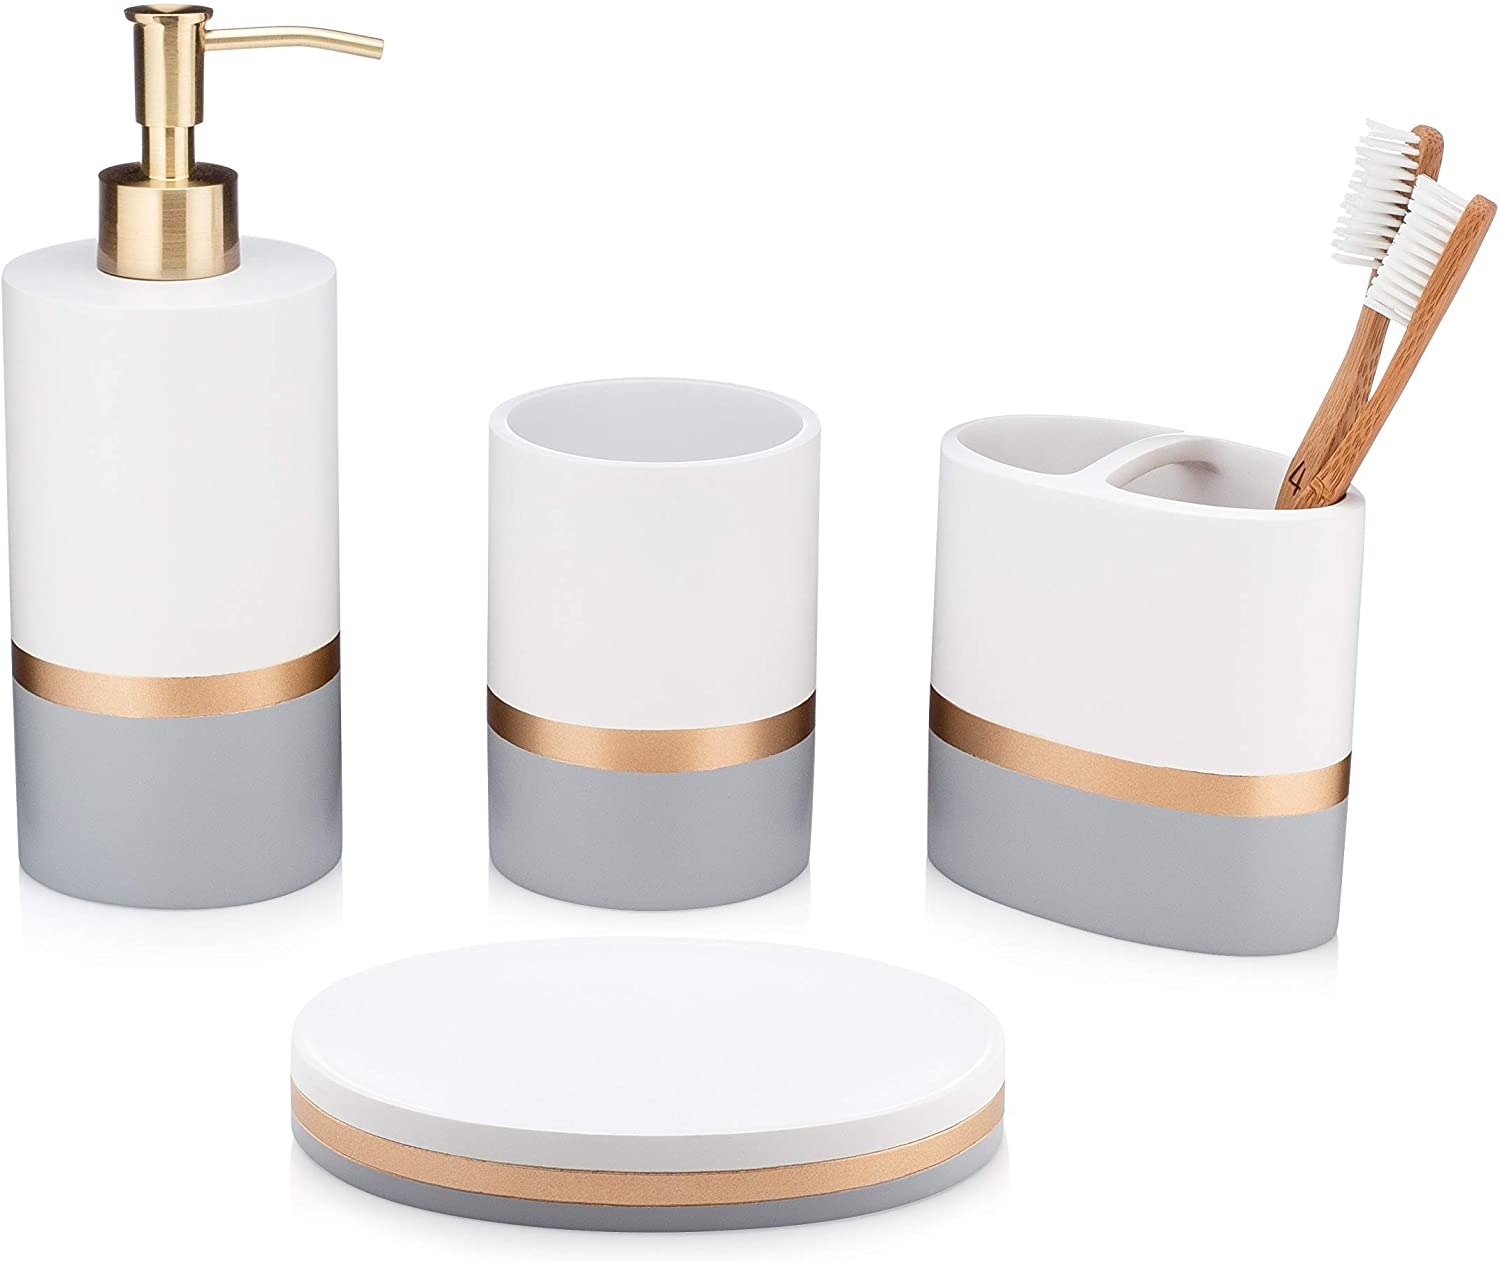 Day And Night Collection 4 Piece Bathroom Accessory Set White And Grey With Gold Stripe Set Includes Lotion Dispenser Toothbrush Holder Tumbler And Soap Dish Walmart Canada